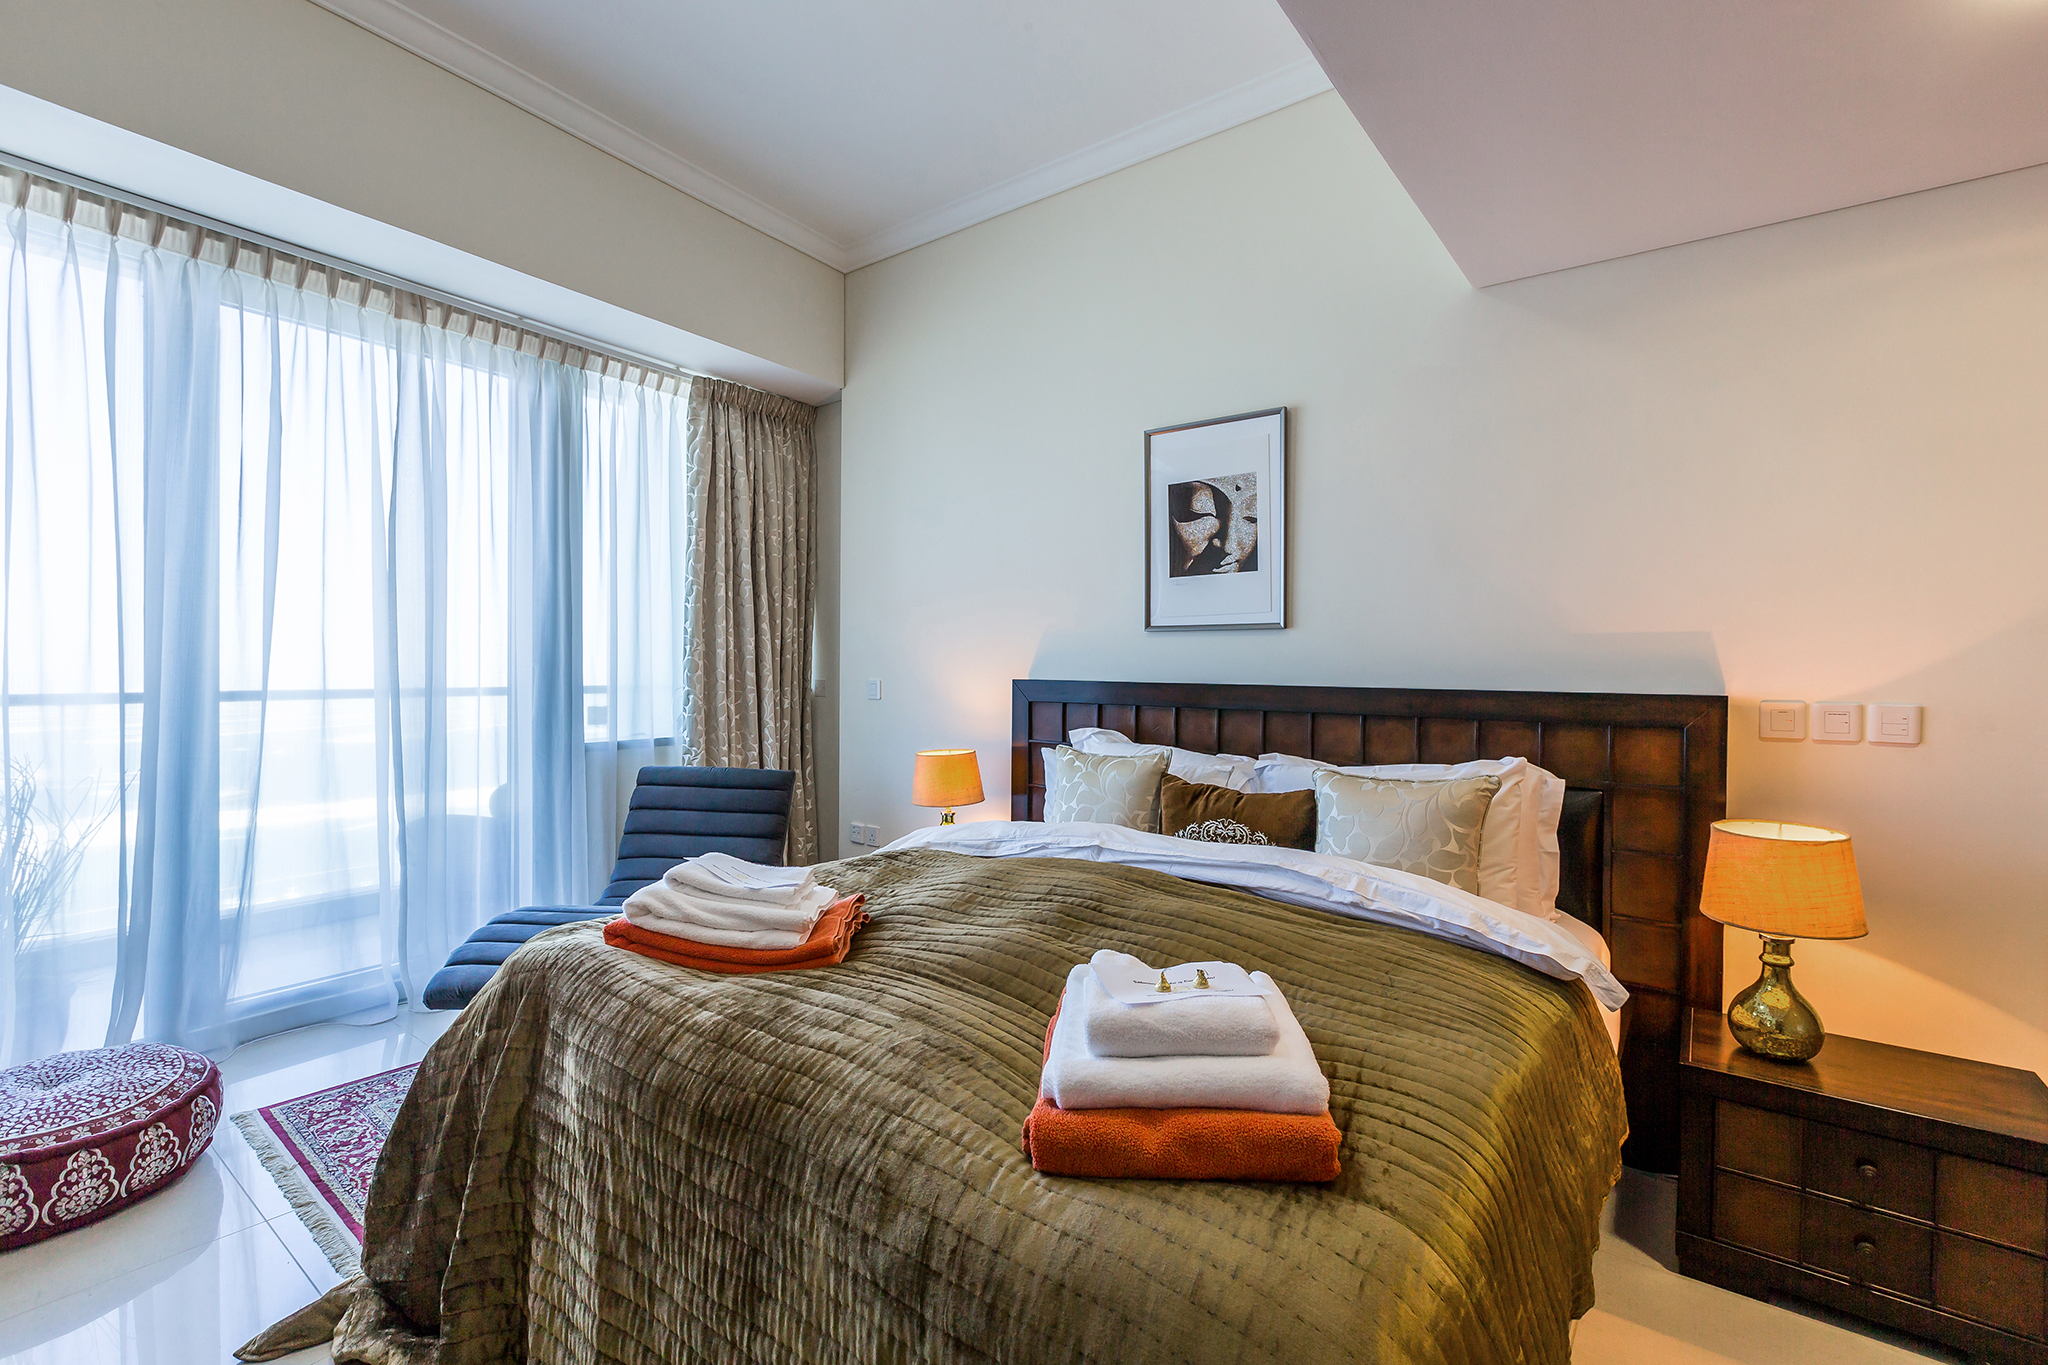 The master bedroom has a huge King-Size bed, and is fully furnished to make your stay even more comfortable